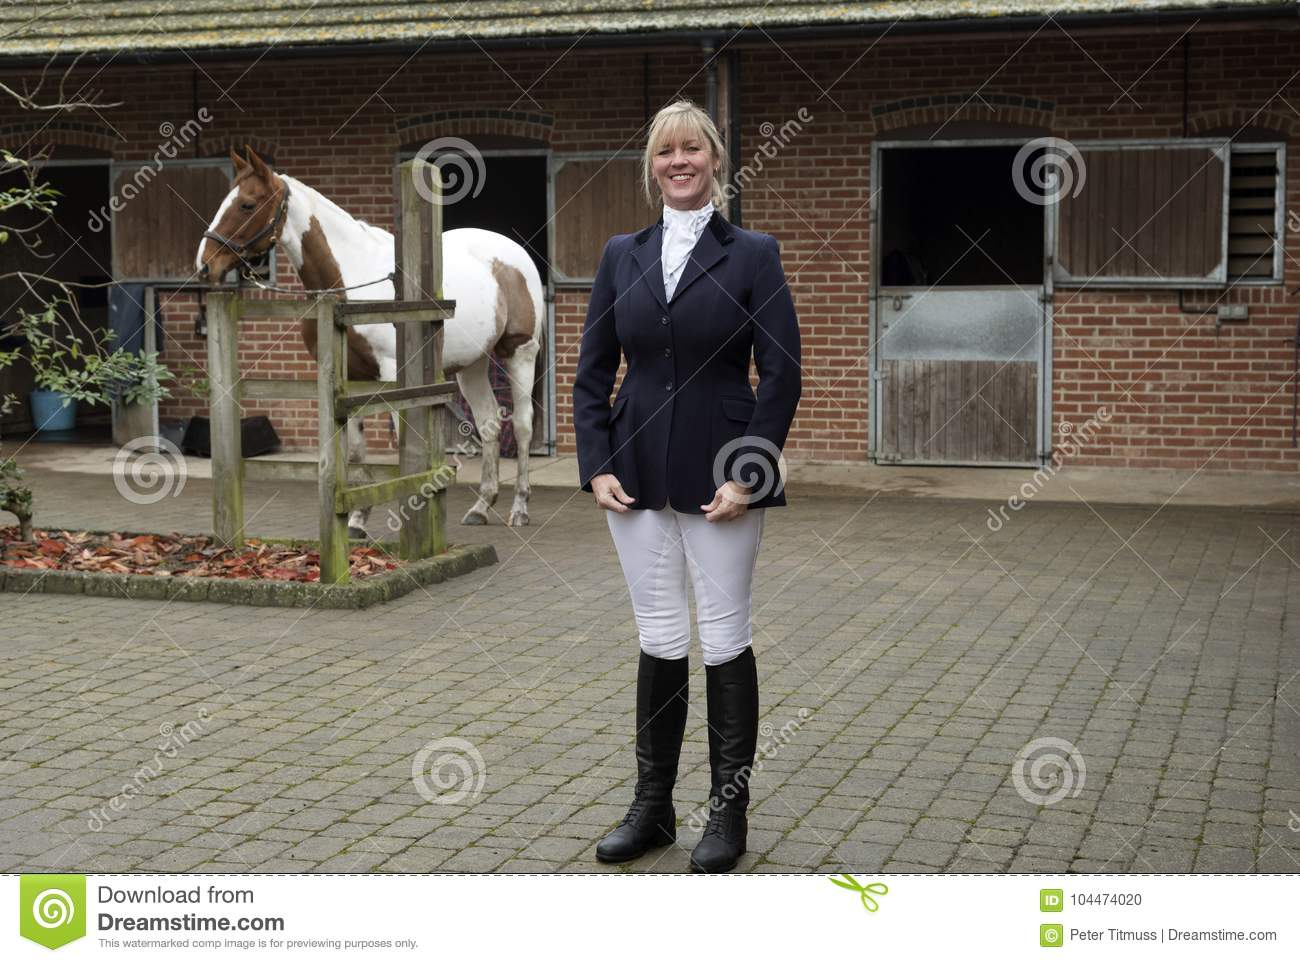 Woman Horse Rider Standing In A Stable Yard Stock Photo Image Of Blue Holding 104474020